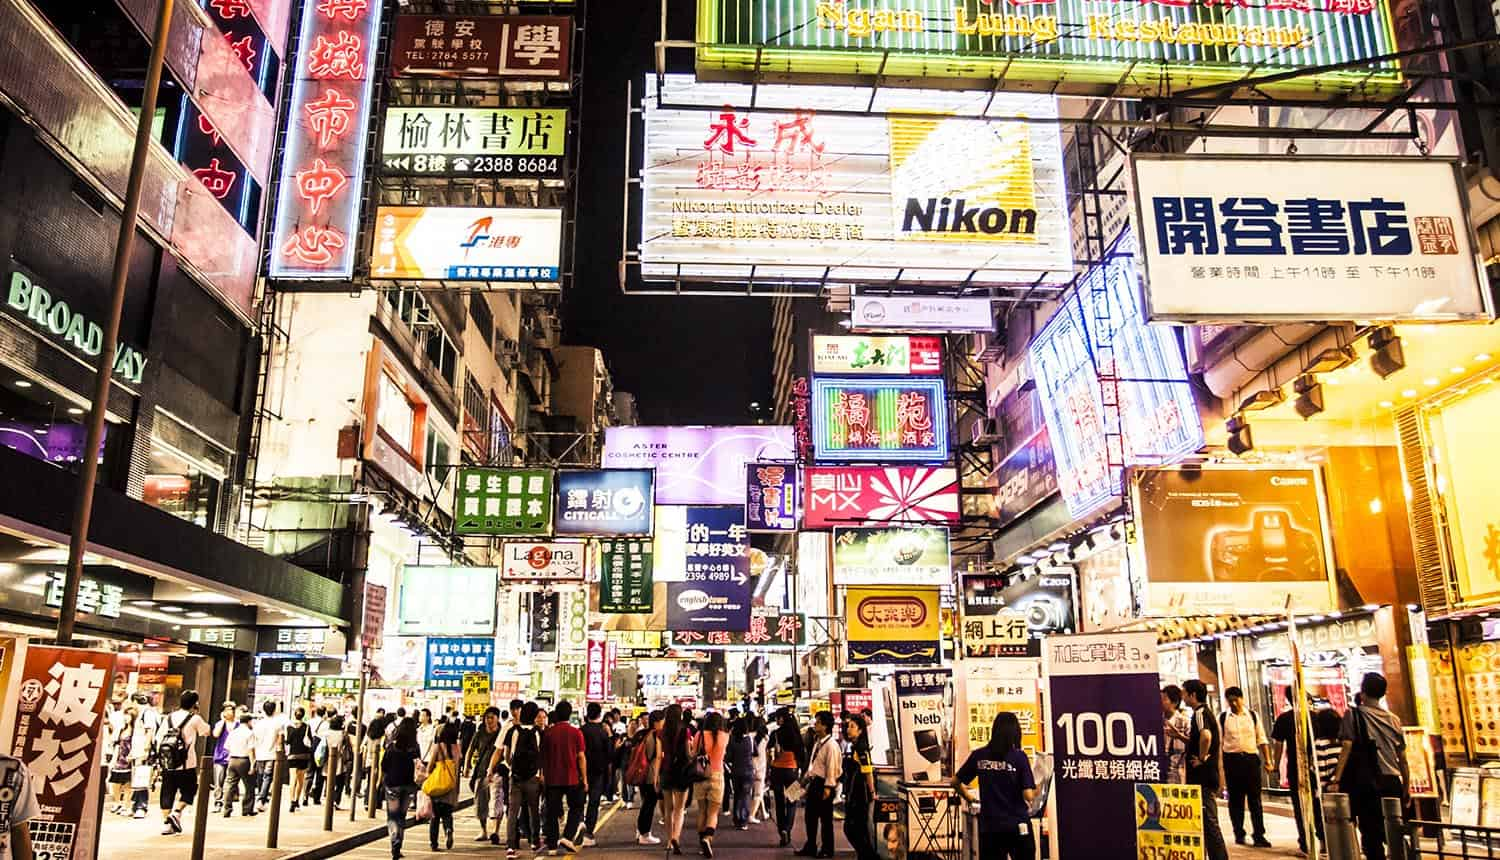 People on street in Hong Kong at night showing PRC disinformation campaigns